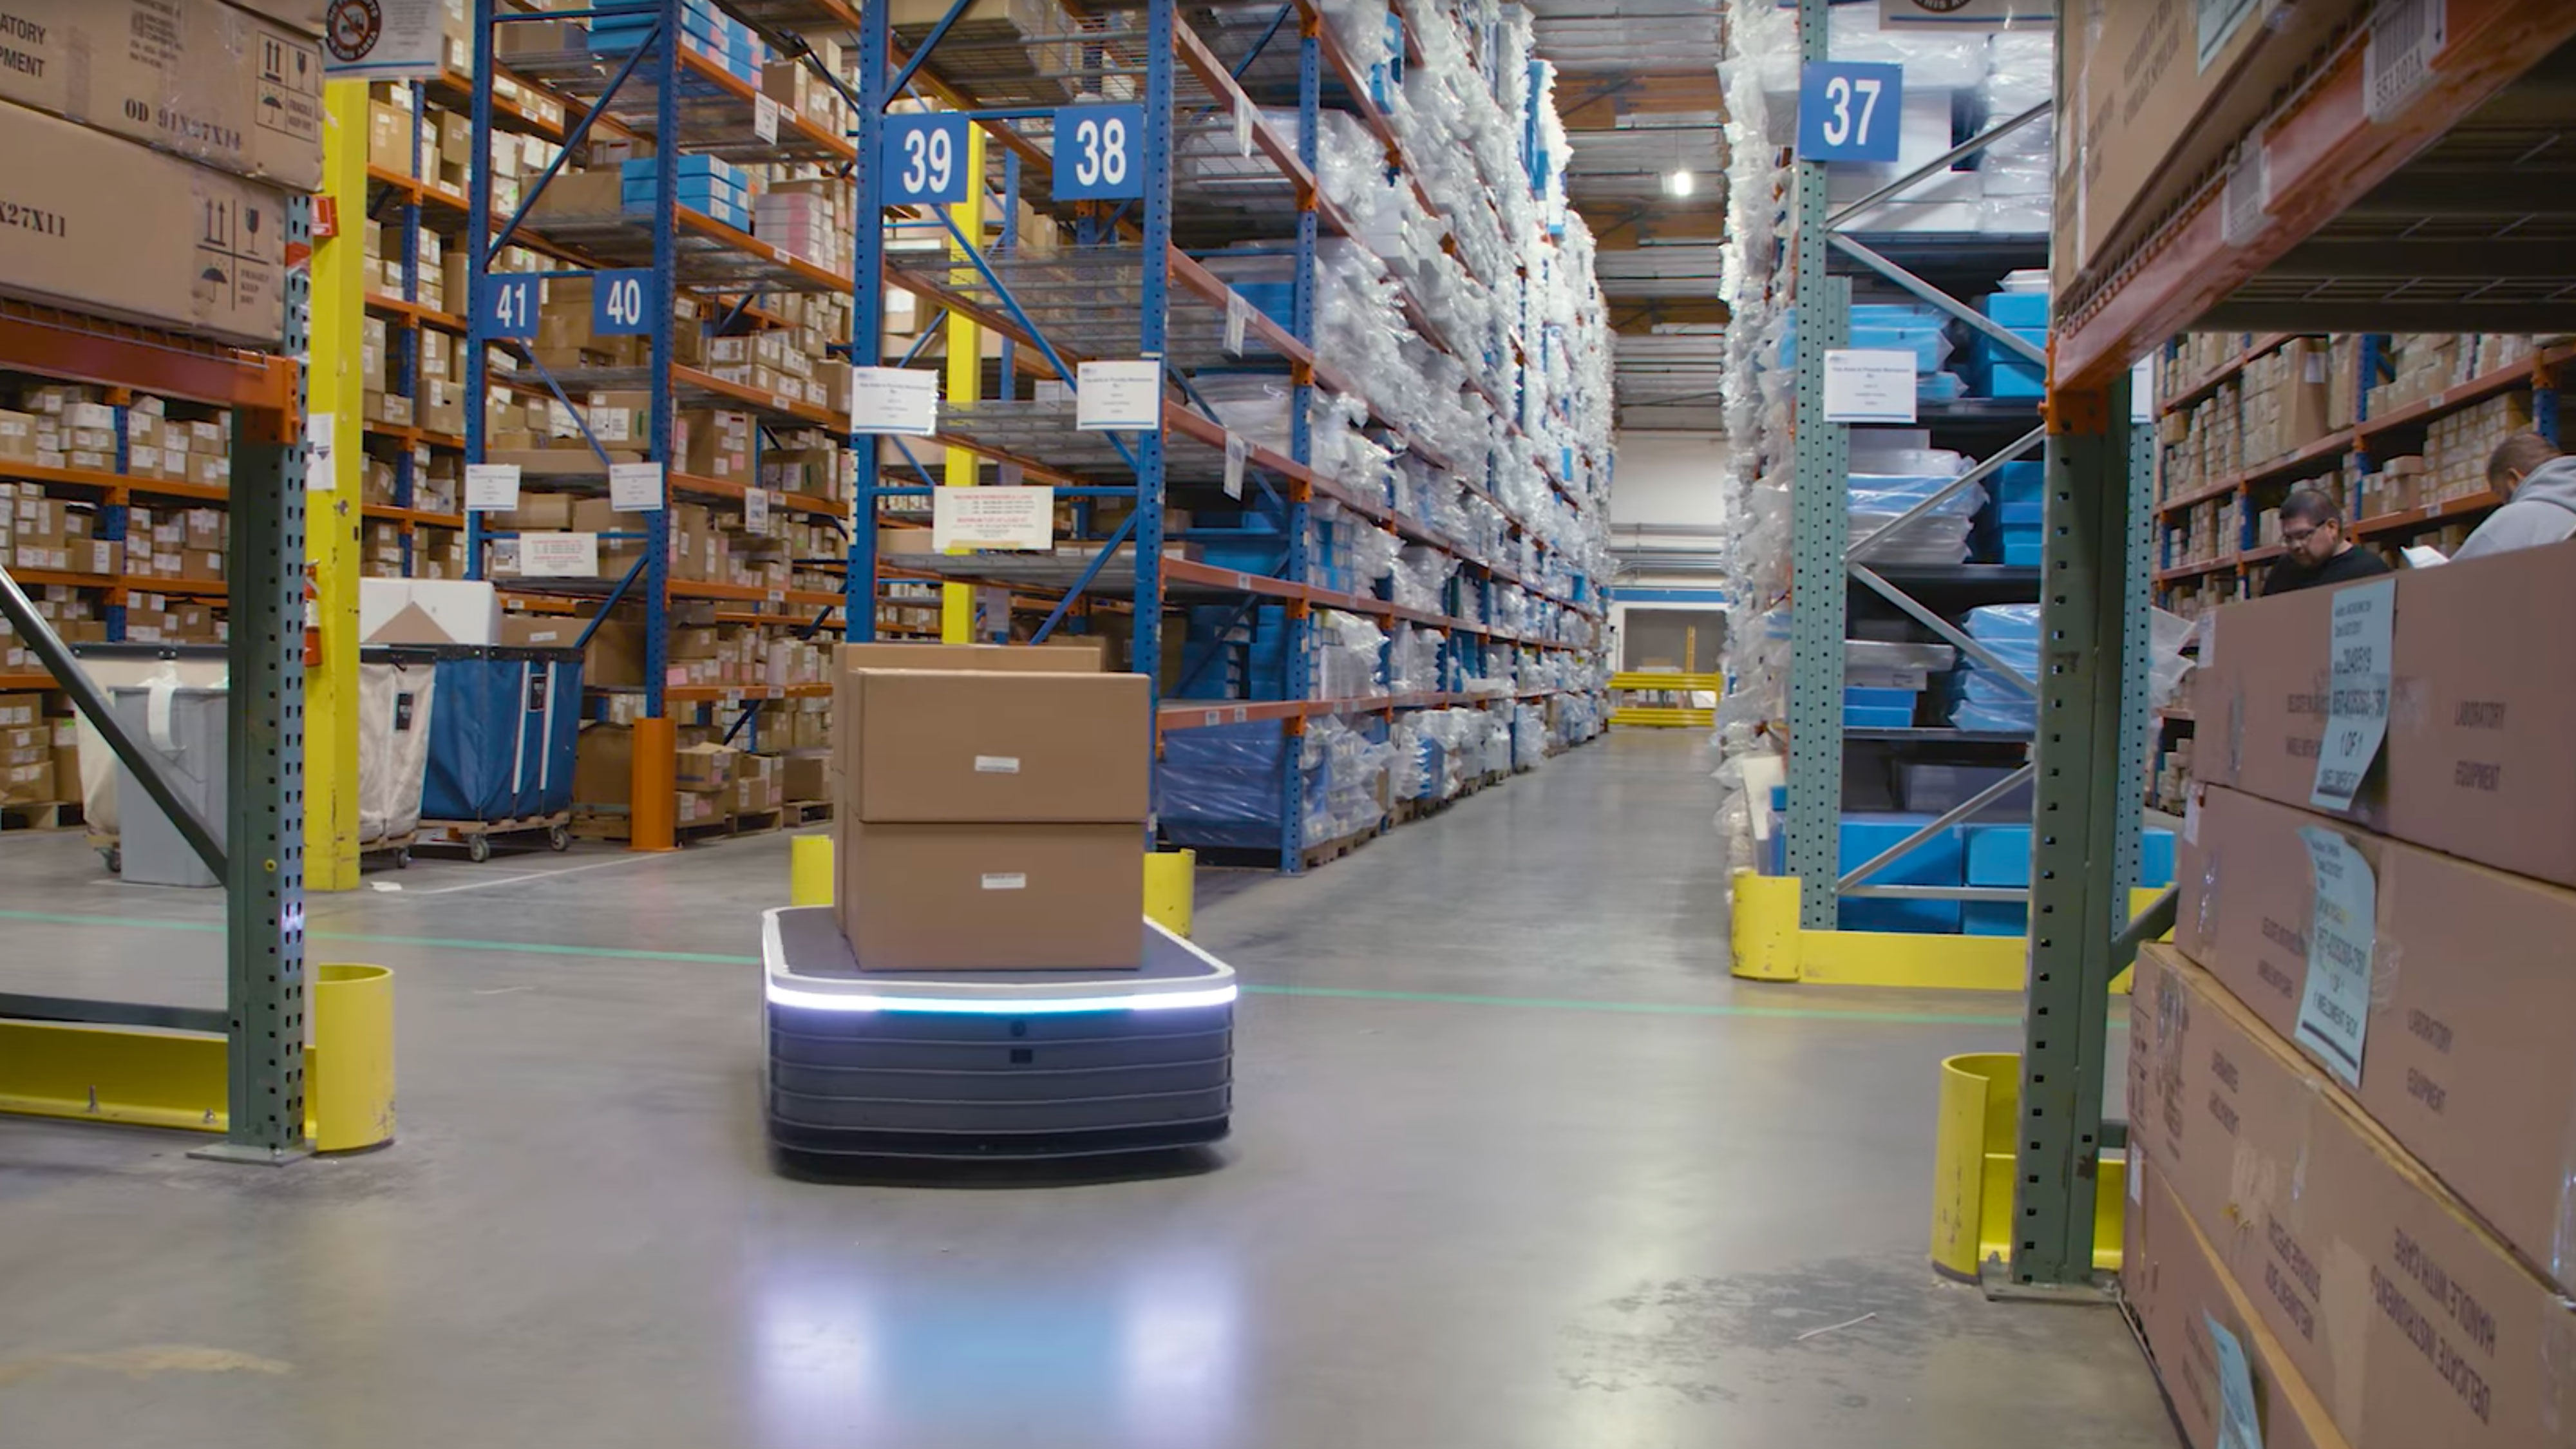 an overview of warehouse robotics innovations The neighbors laughed at what he built, but then regretted not doing the same themselves - duration: 10:02 #mind warehouse 8,409,161 views.